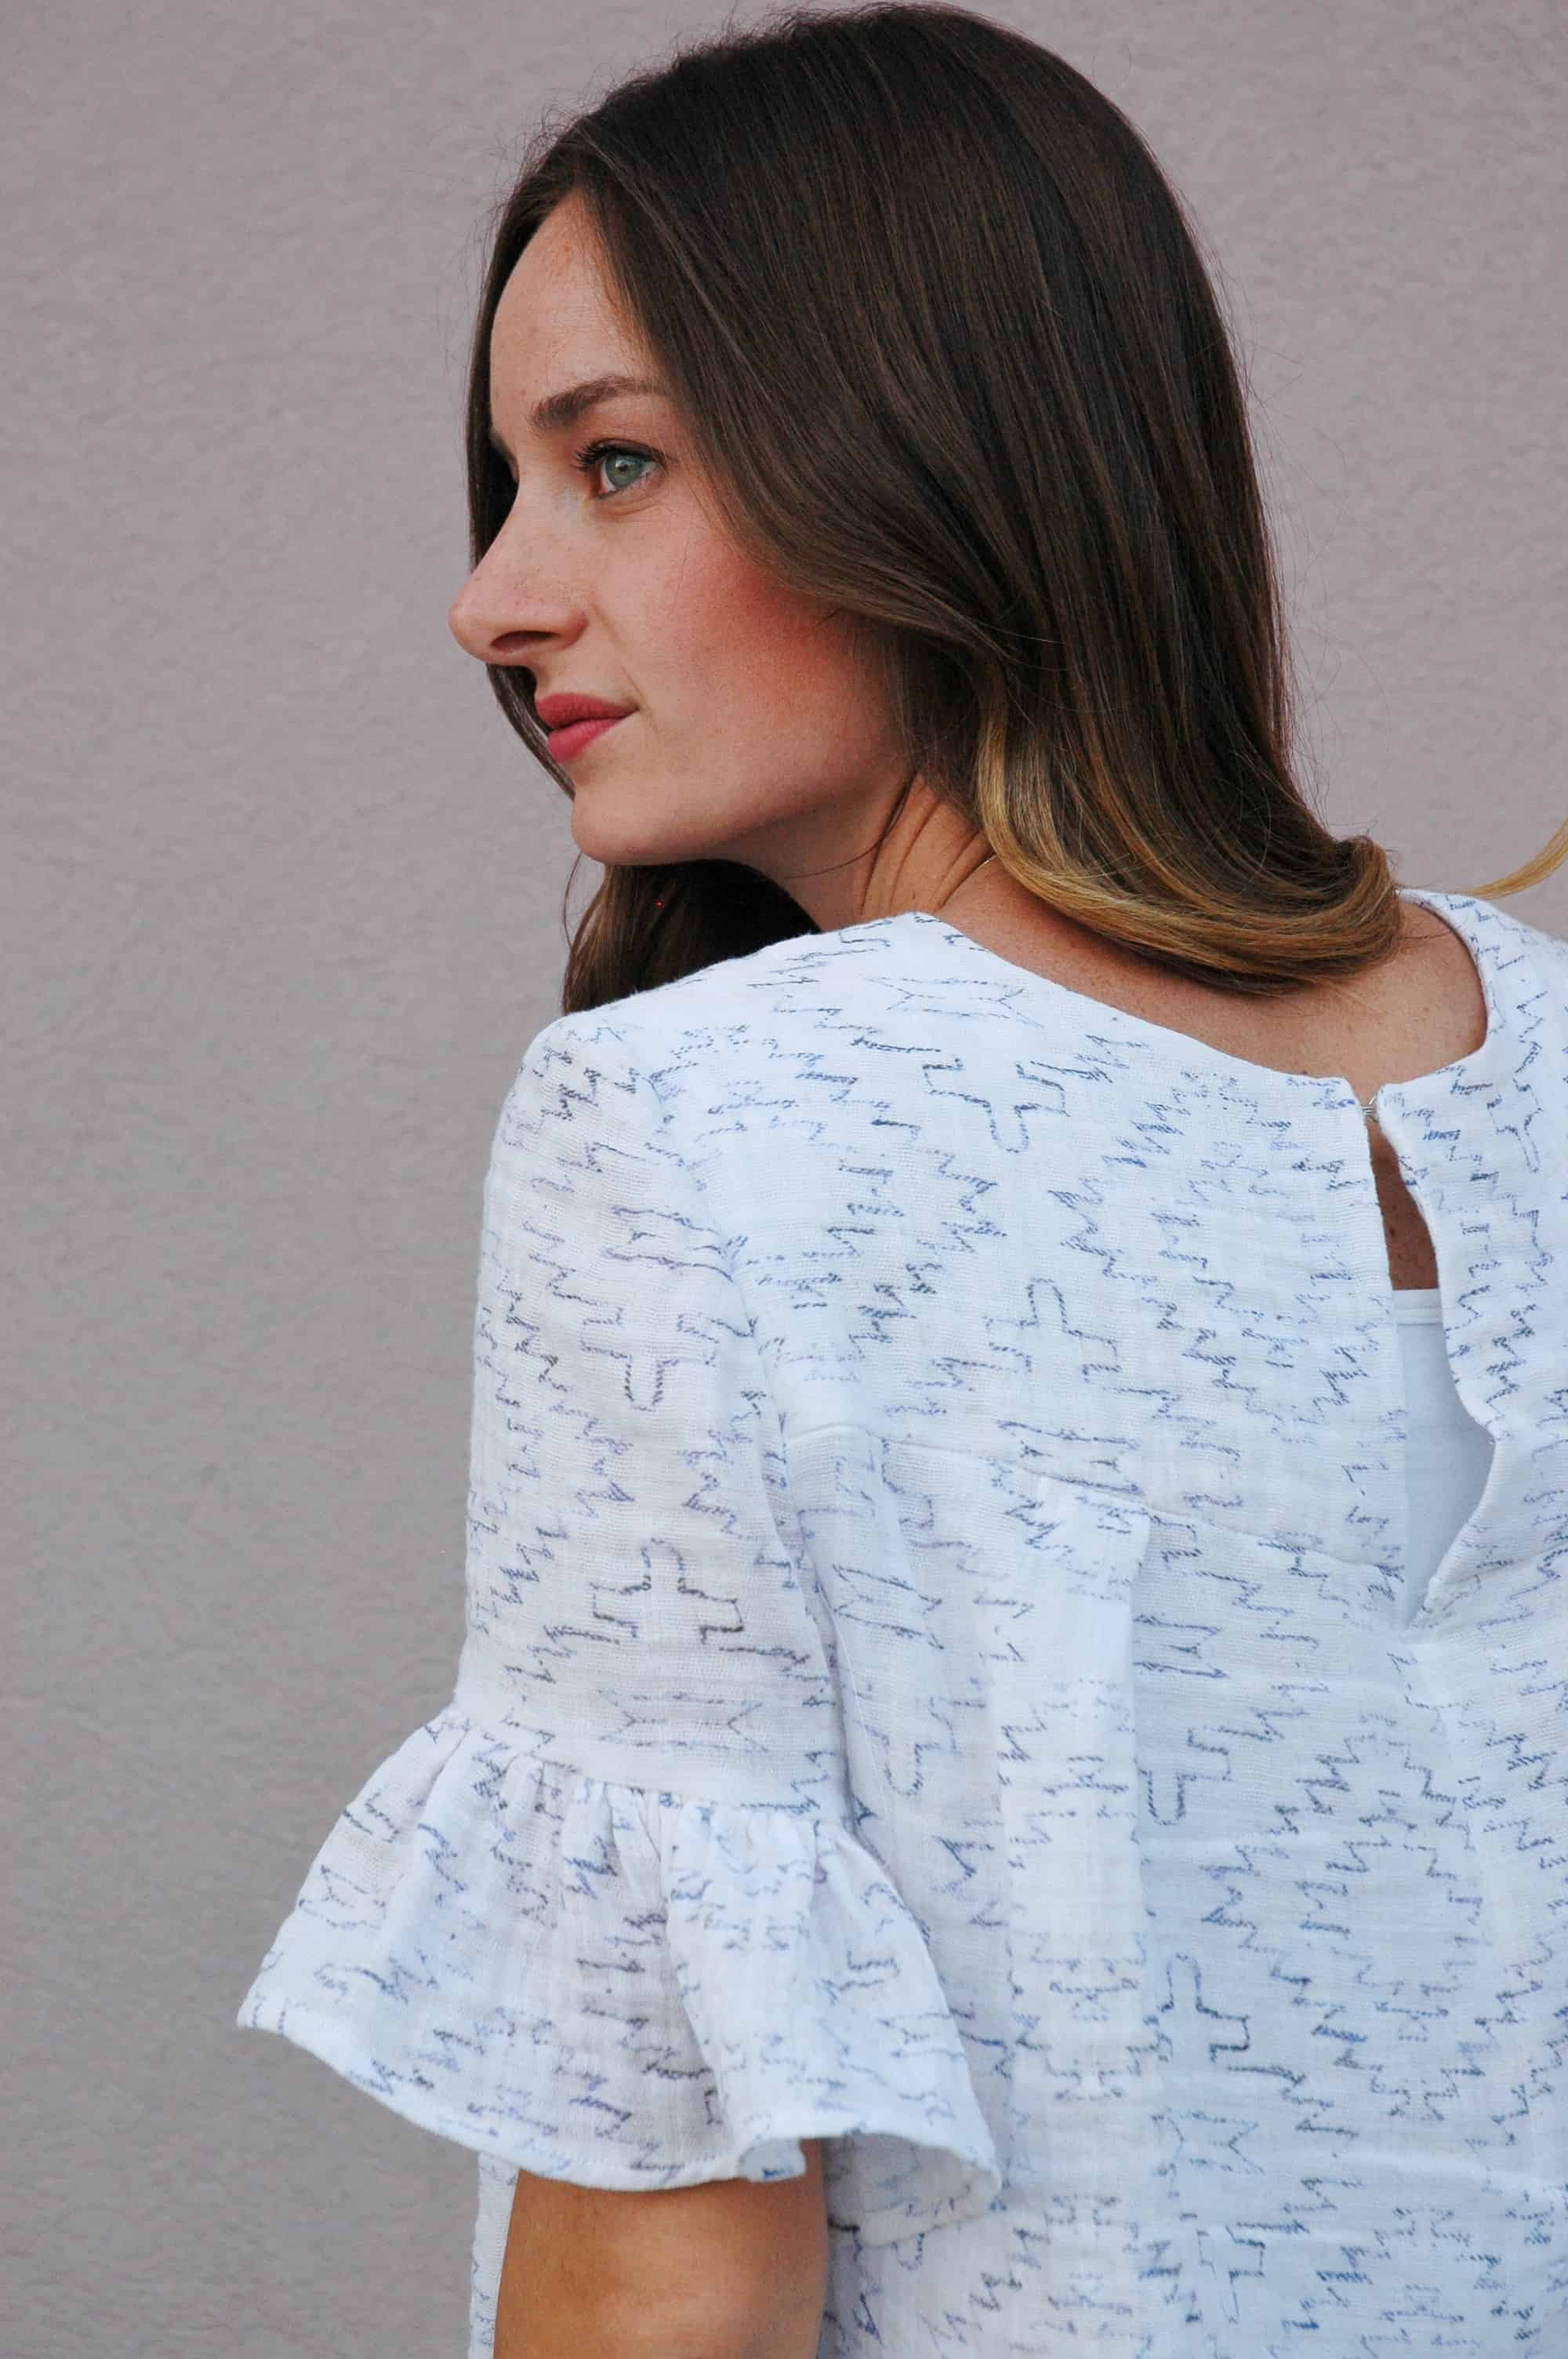 The finished blouse with a hook and eye closure | Spoonflower Blog